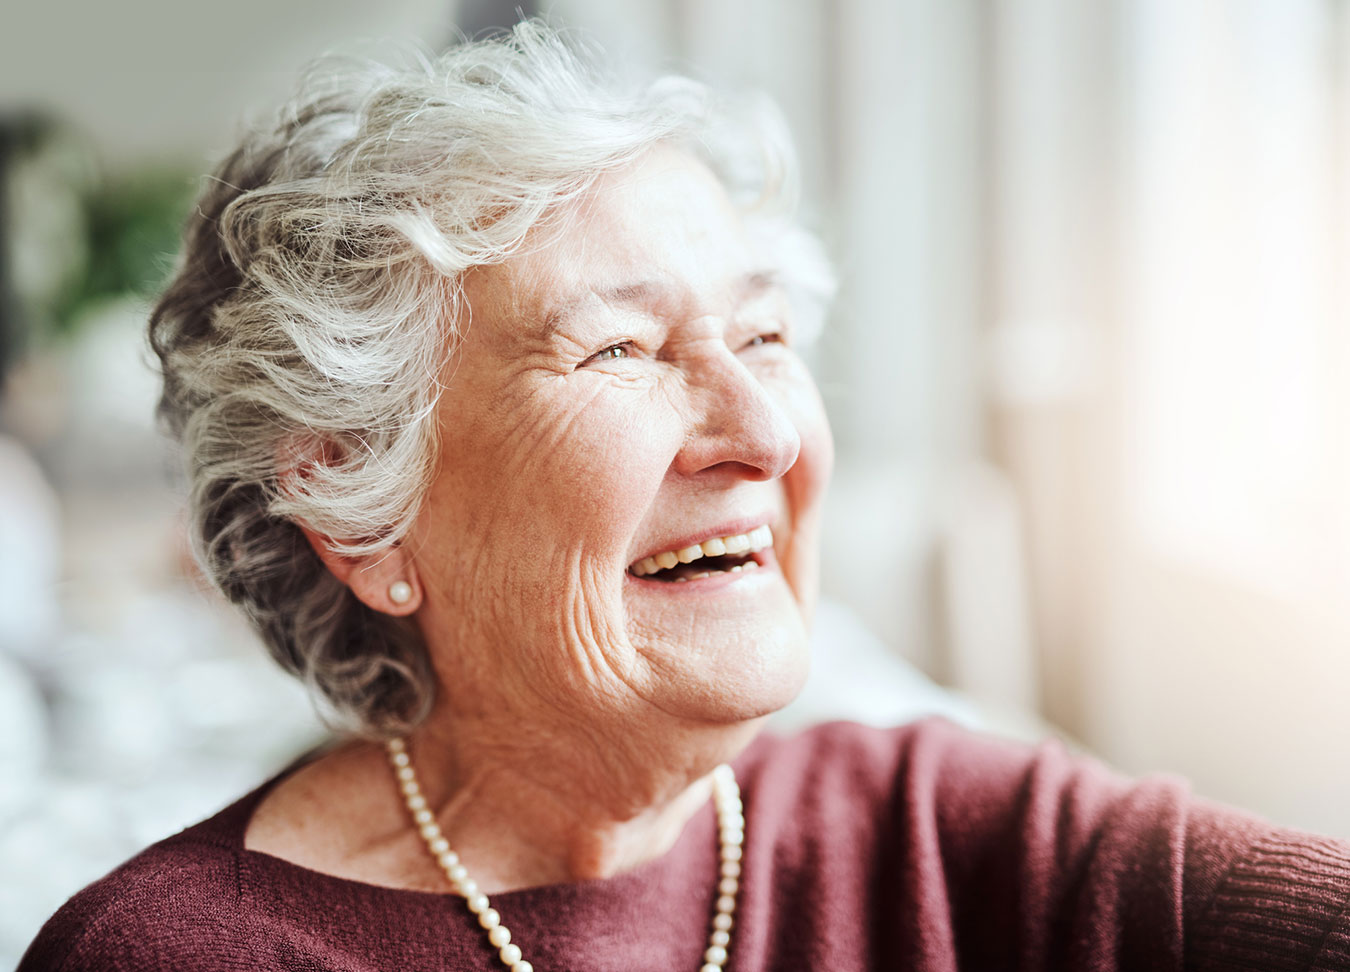 Calgary's Newest Older Adult Community - Trico Living Well